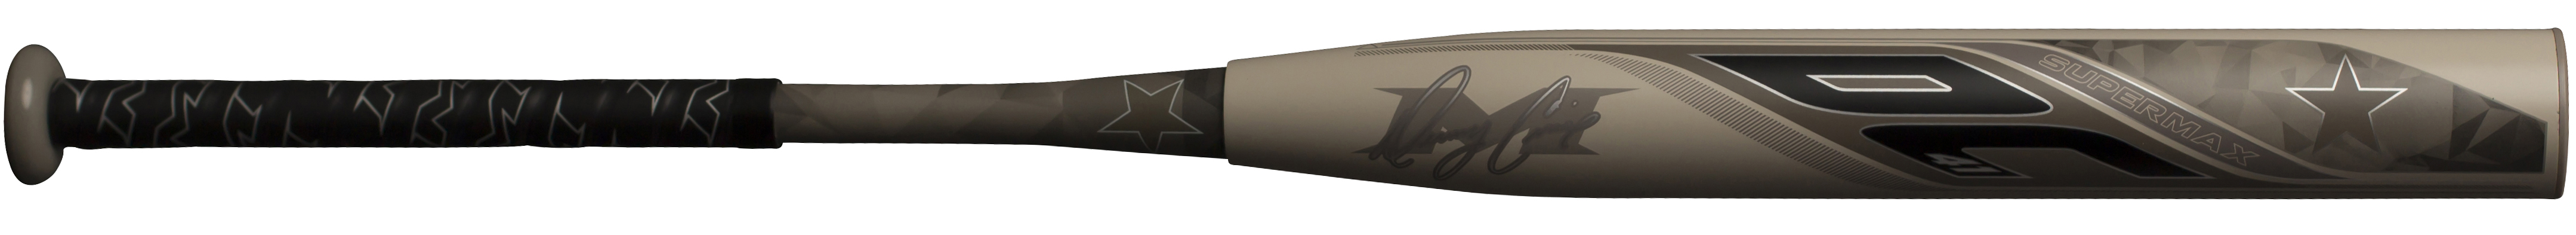 2019 Miken DC-41 SuperMax USSSA Slo-Pitch Bat